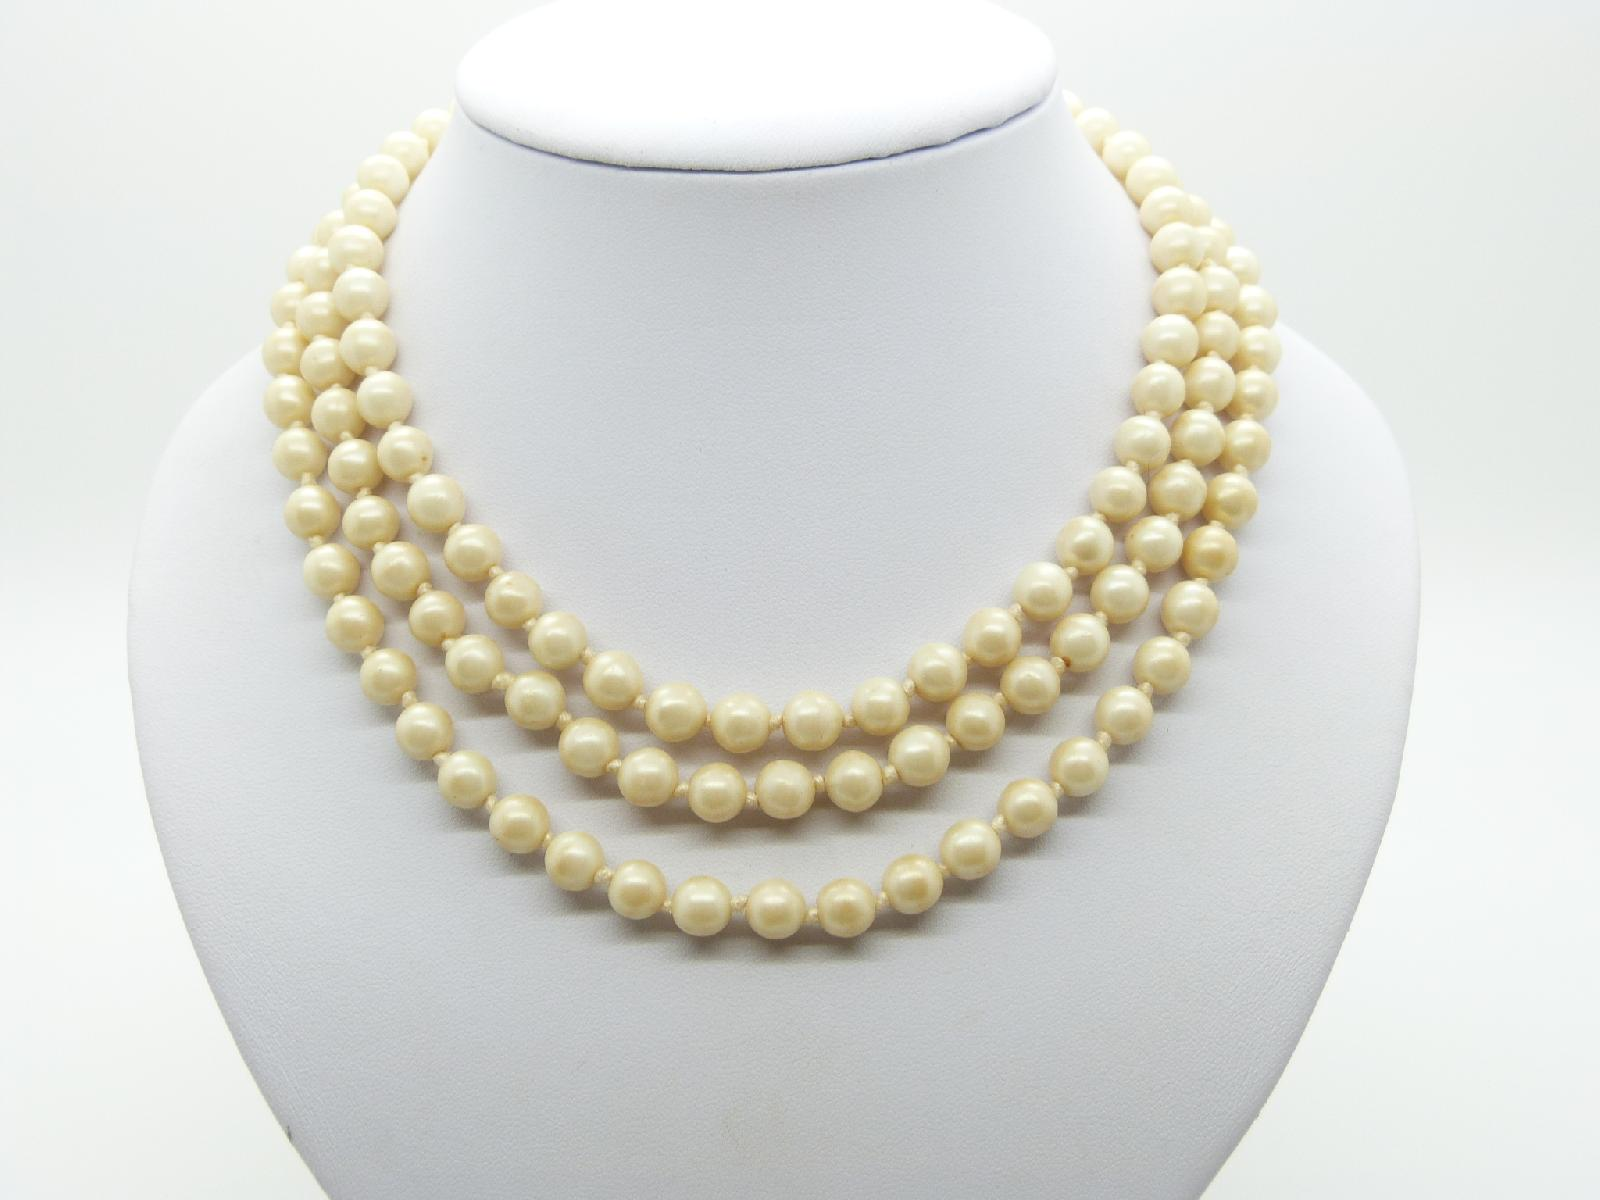 £26.00 - Vintage 50s Quality and Classy Three Row Glass Faux Pearl Bead Necklace 45cms